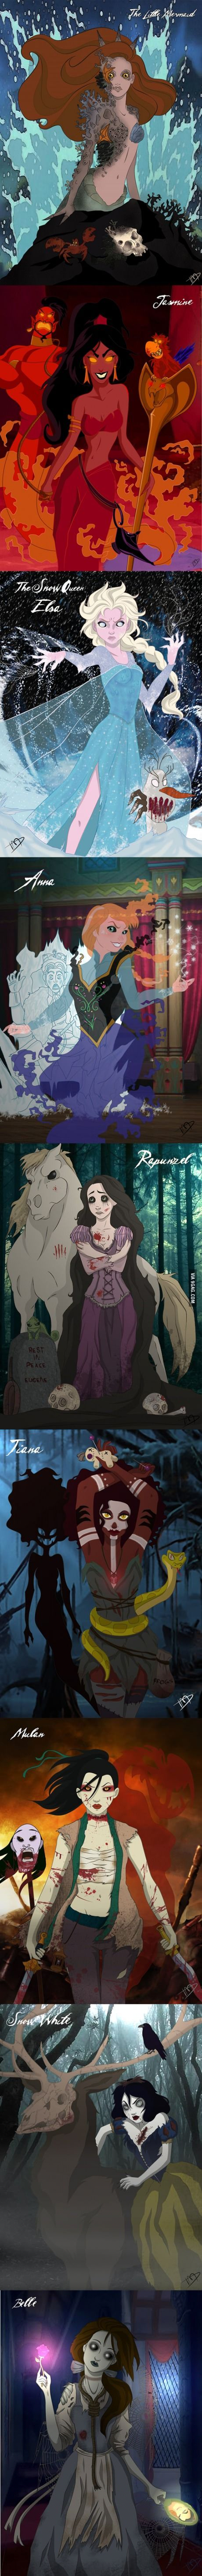 Evil Disney Princess.... this is awesome :)